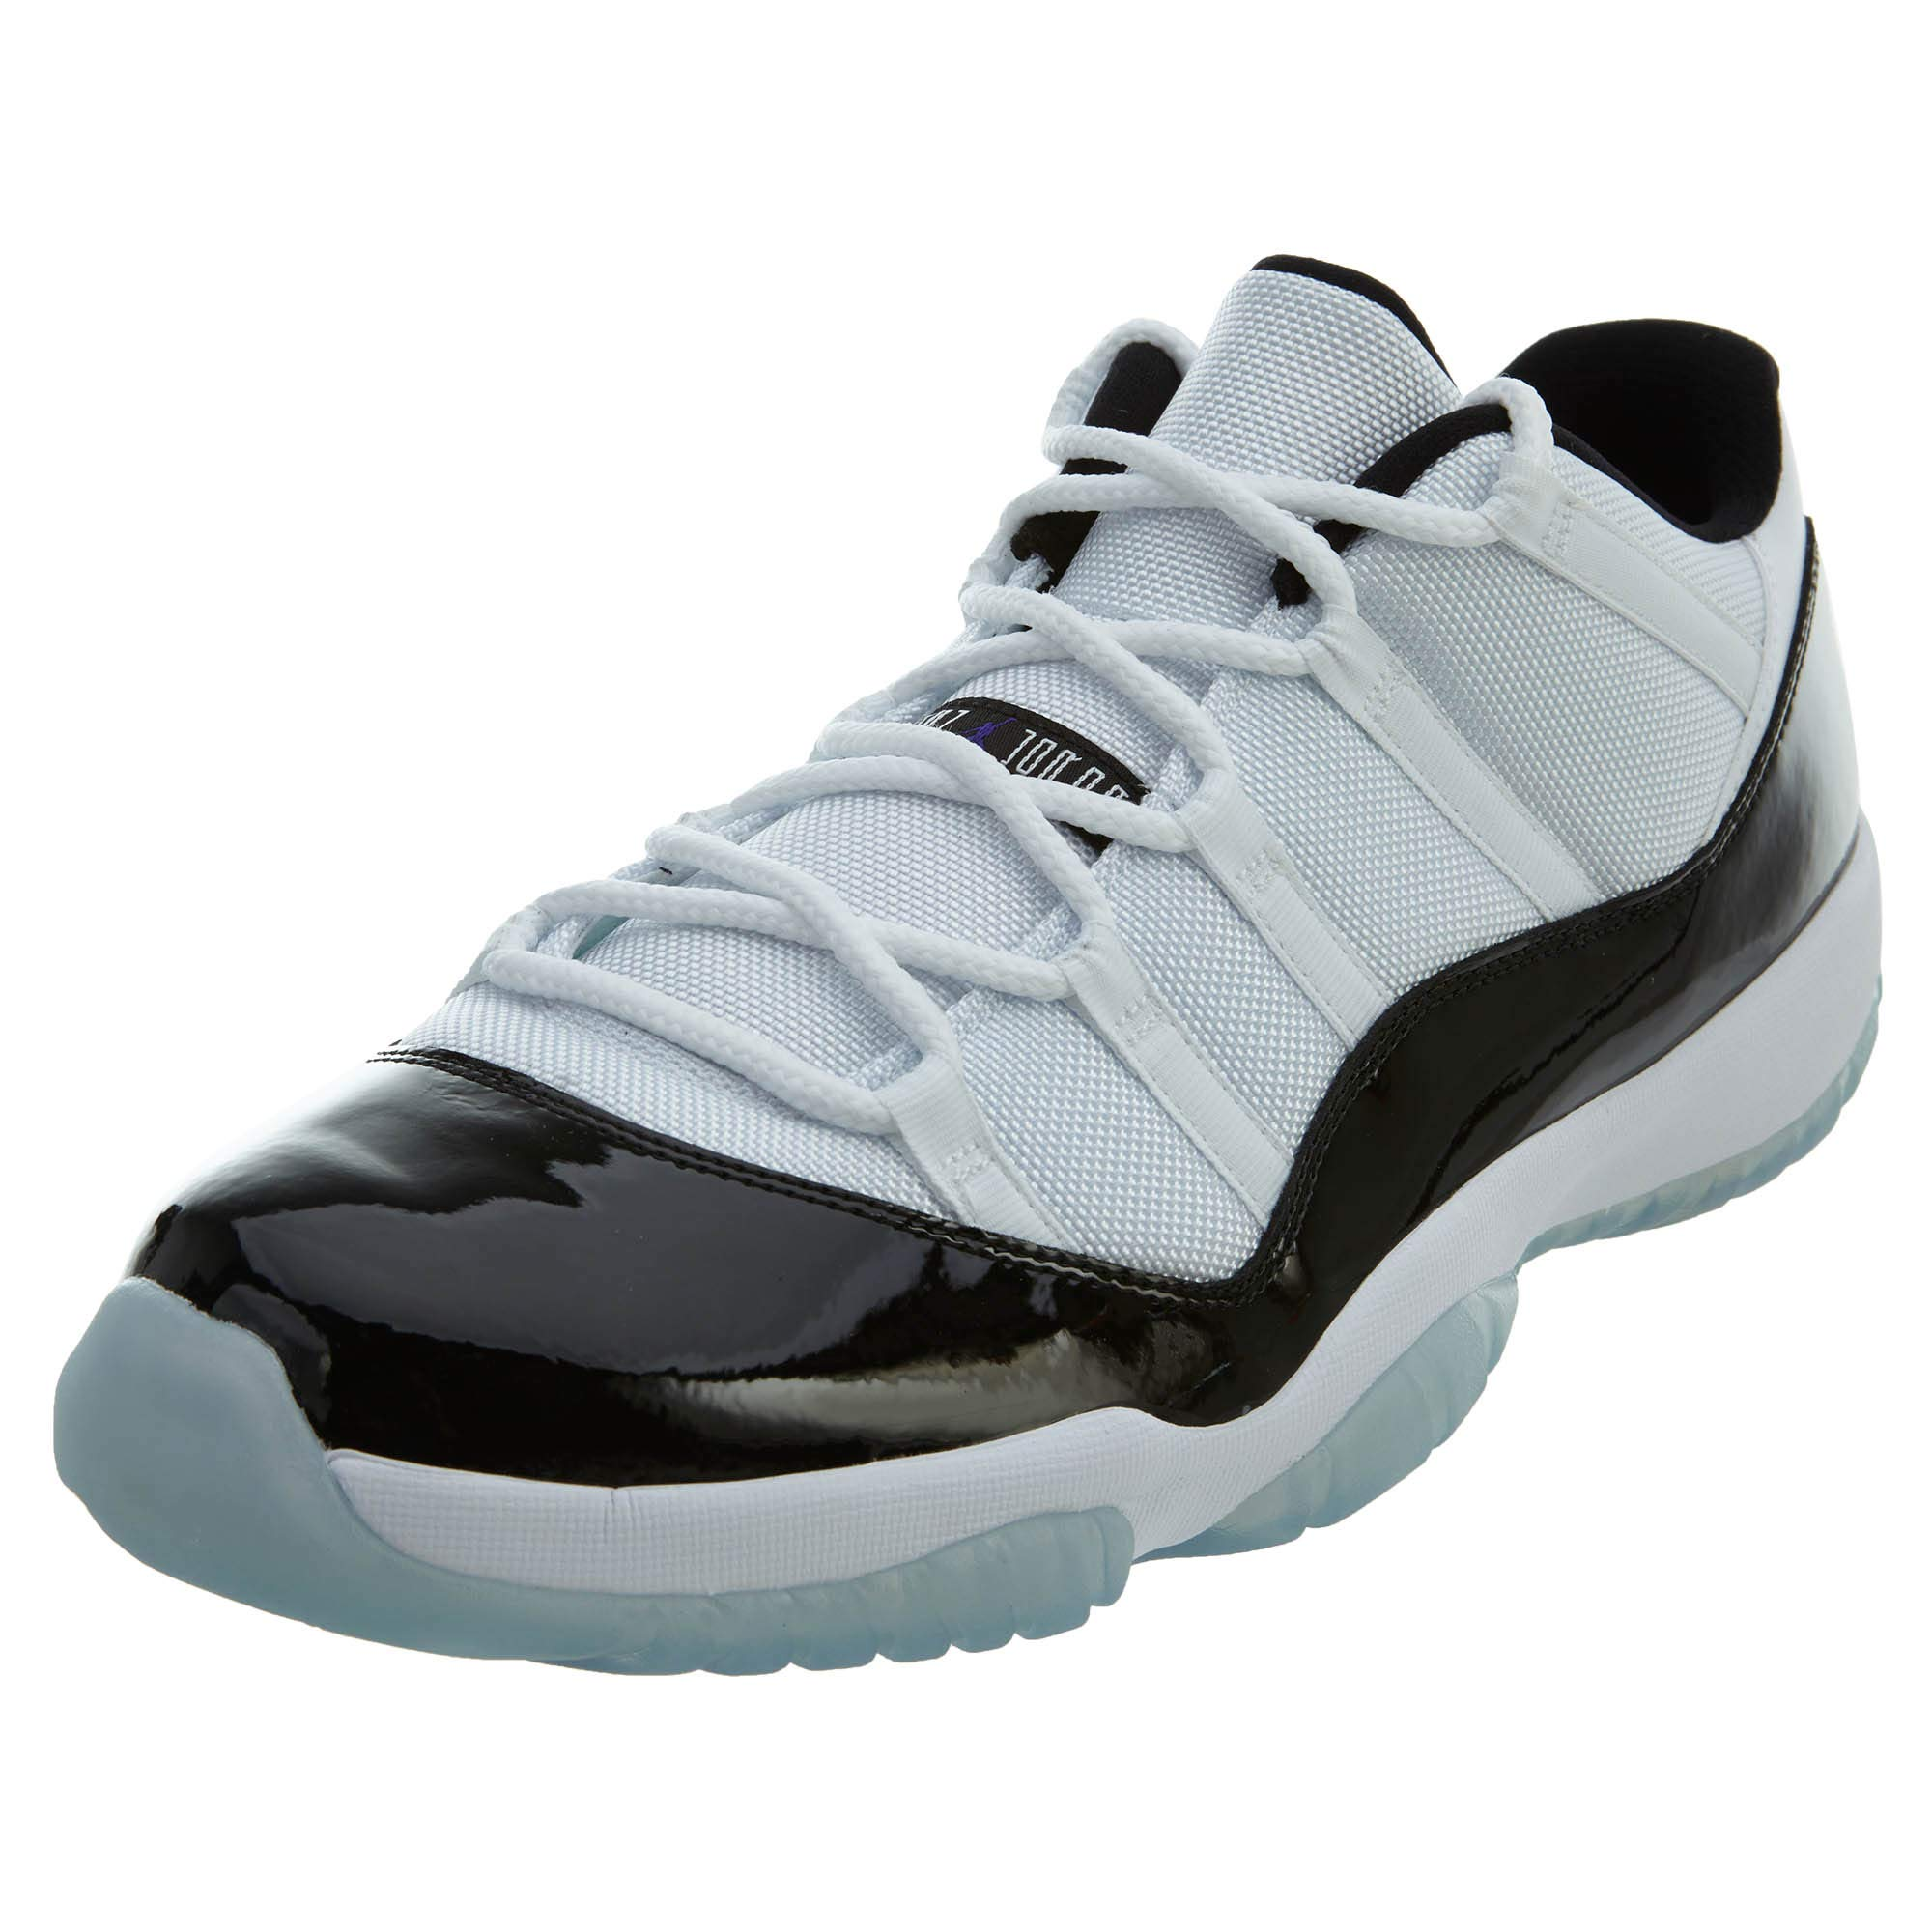 huge selection of b11b9 6e079 Galleon - Air Jordan 11 Retro Low